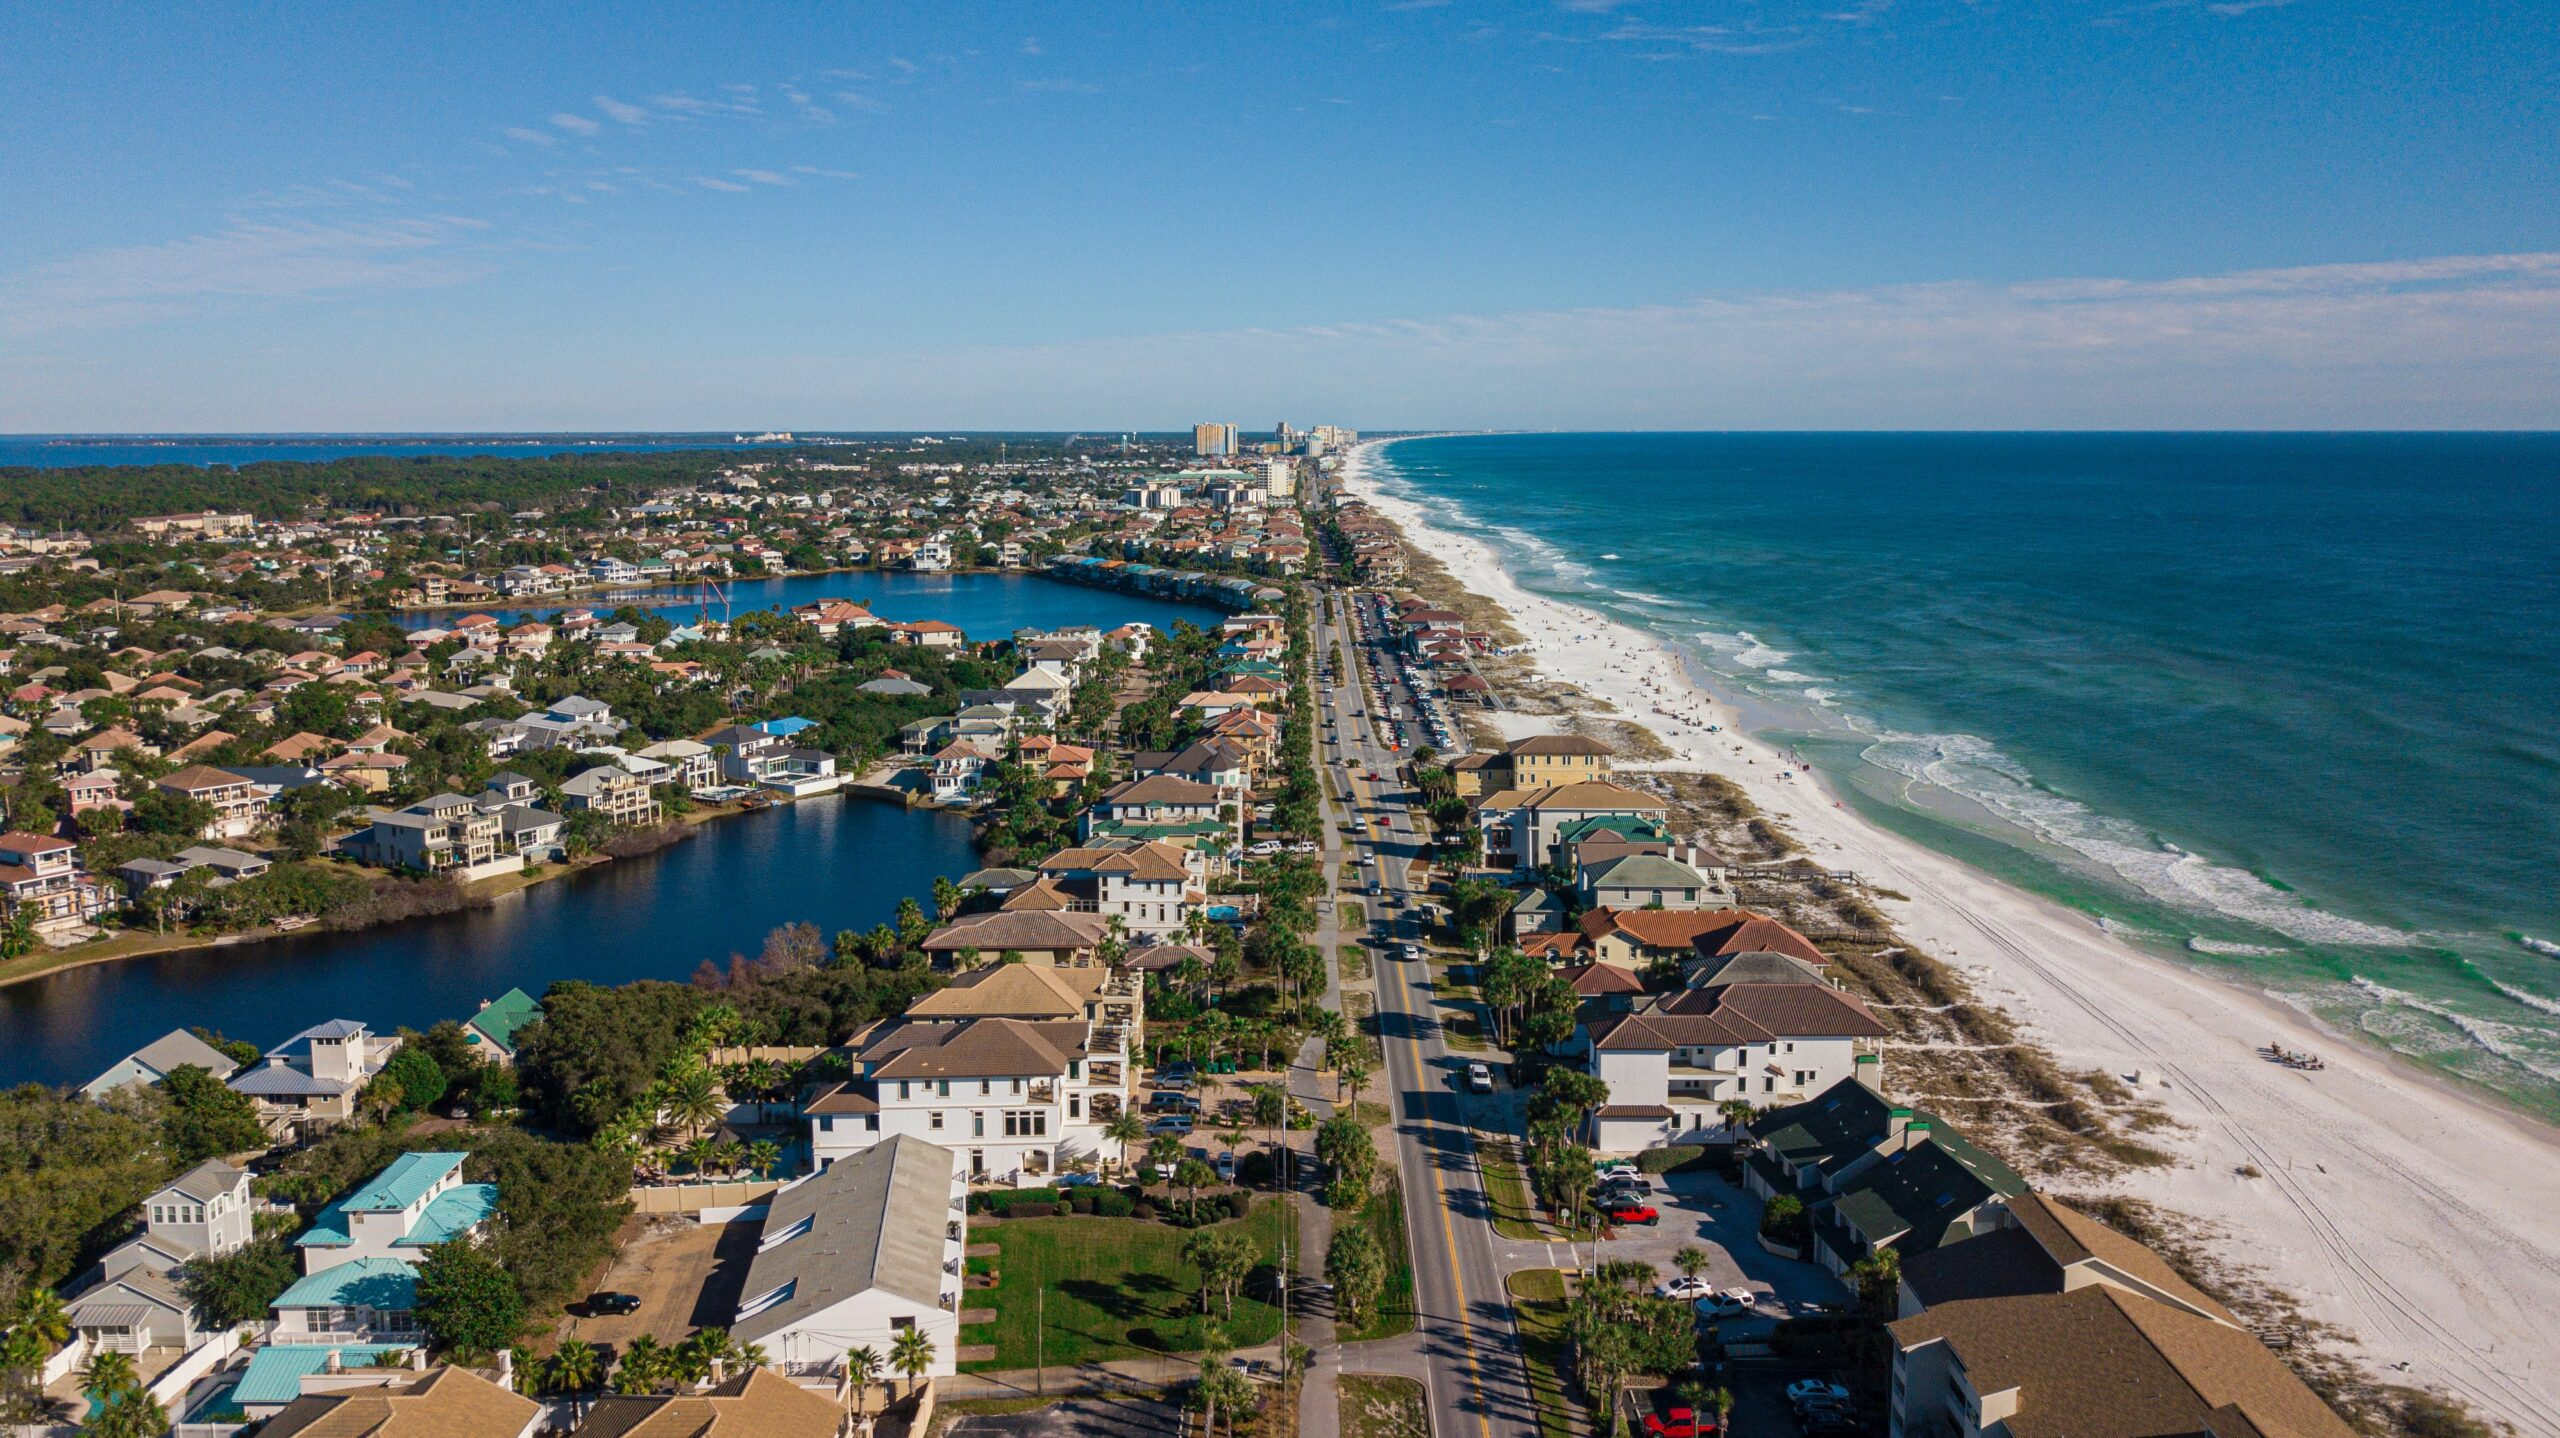 The Pros of Condo Living on the Emerald Coast